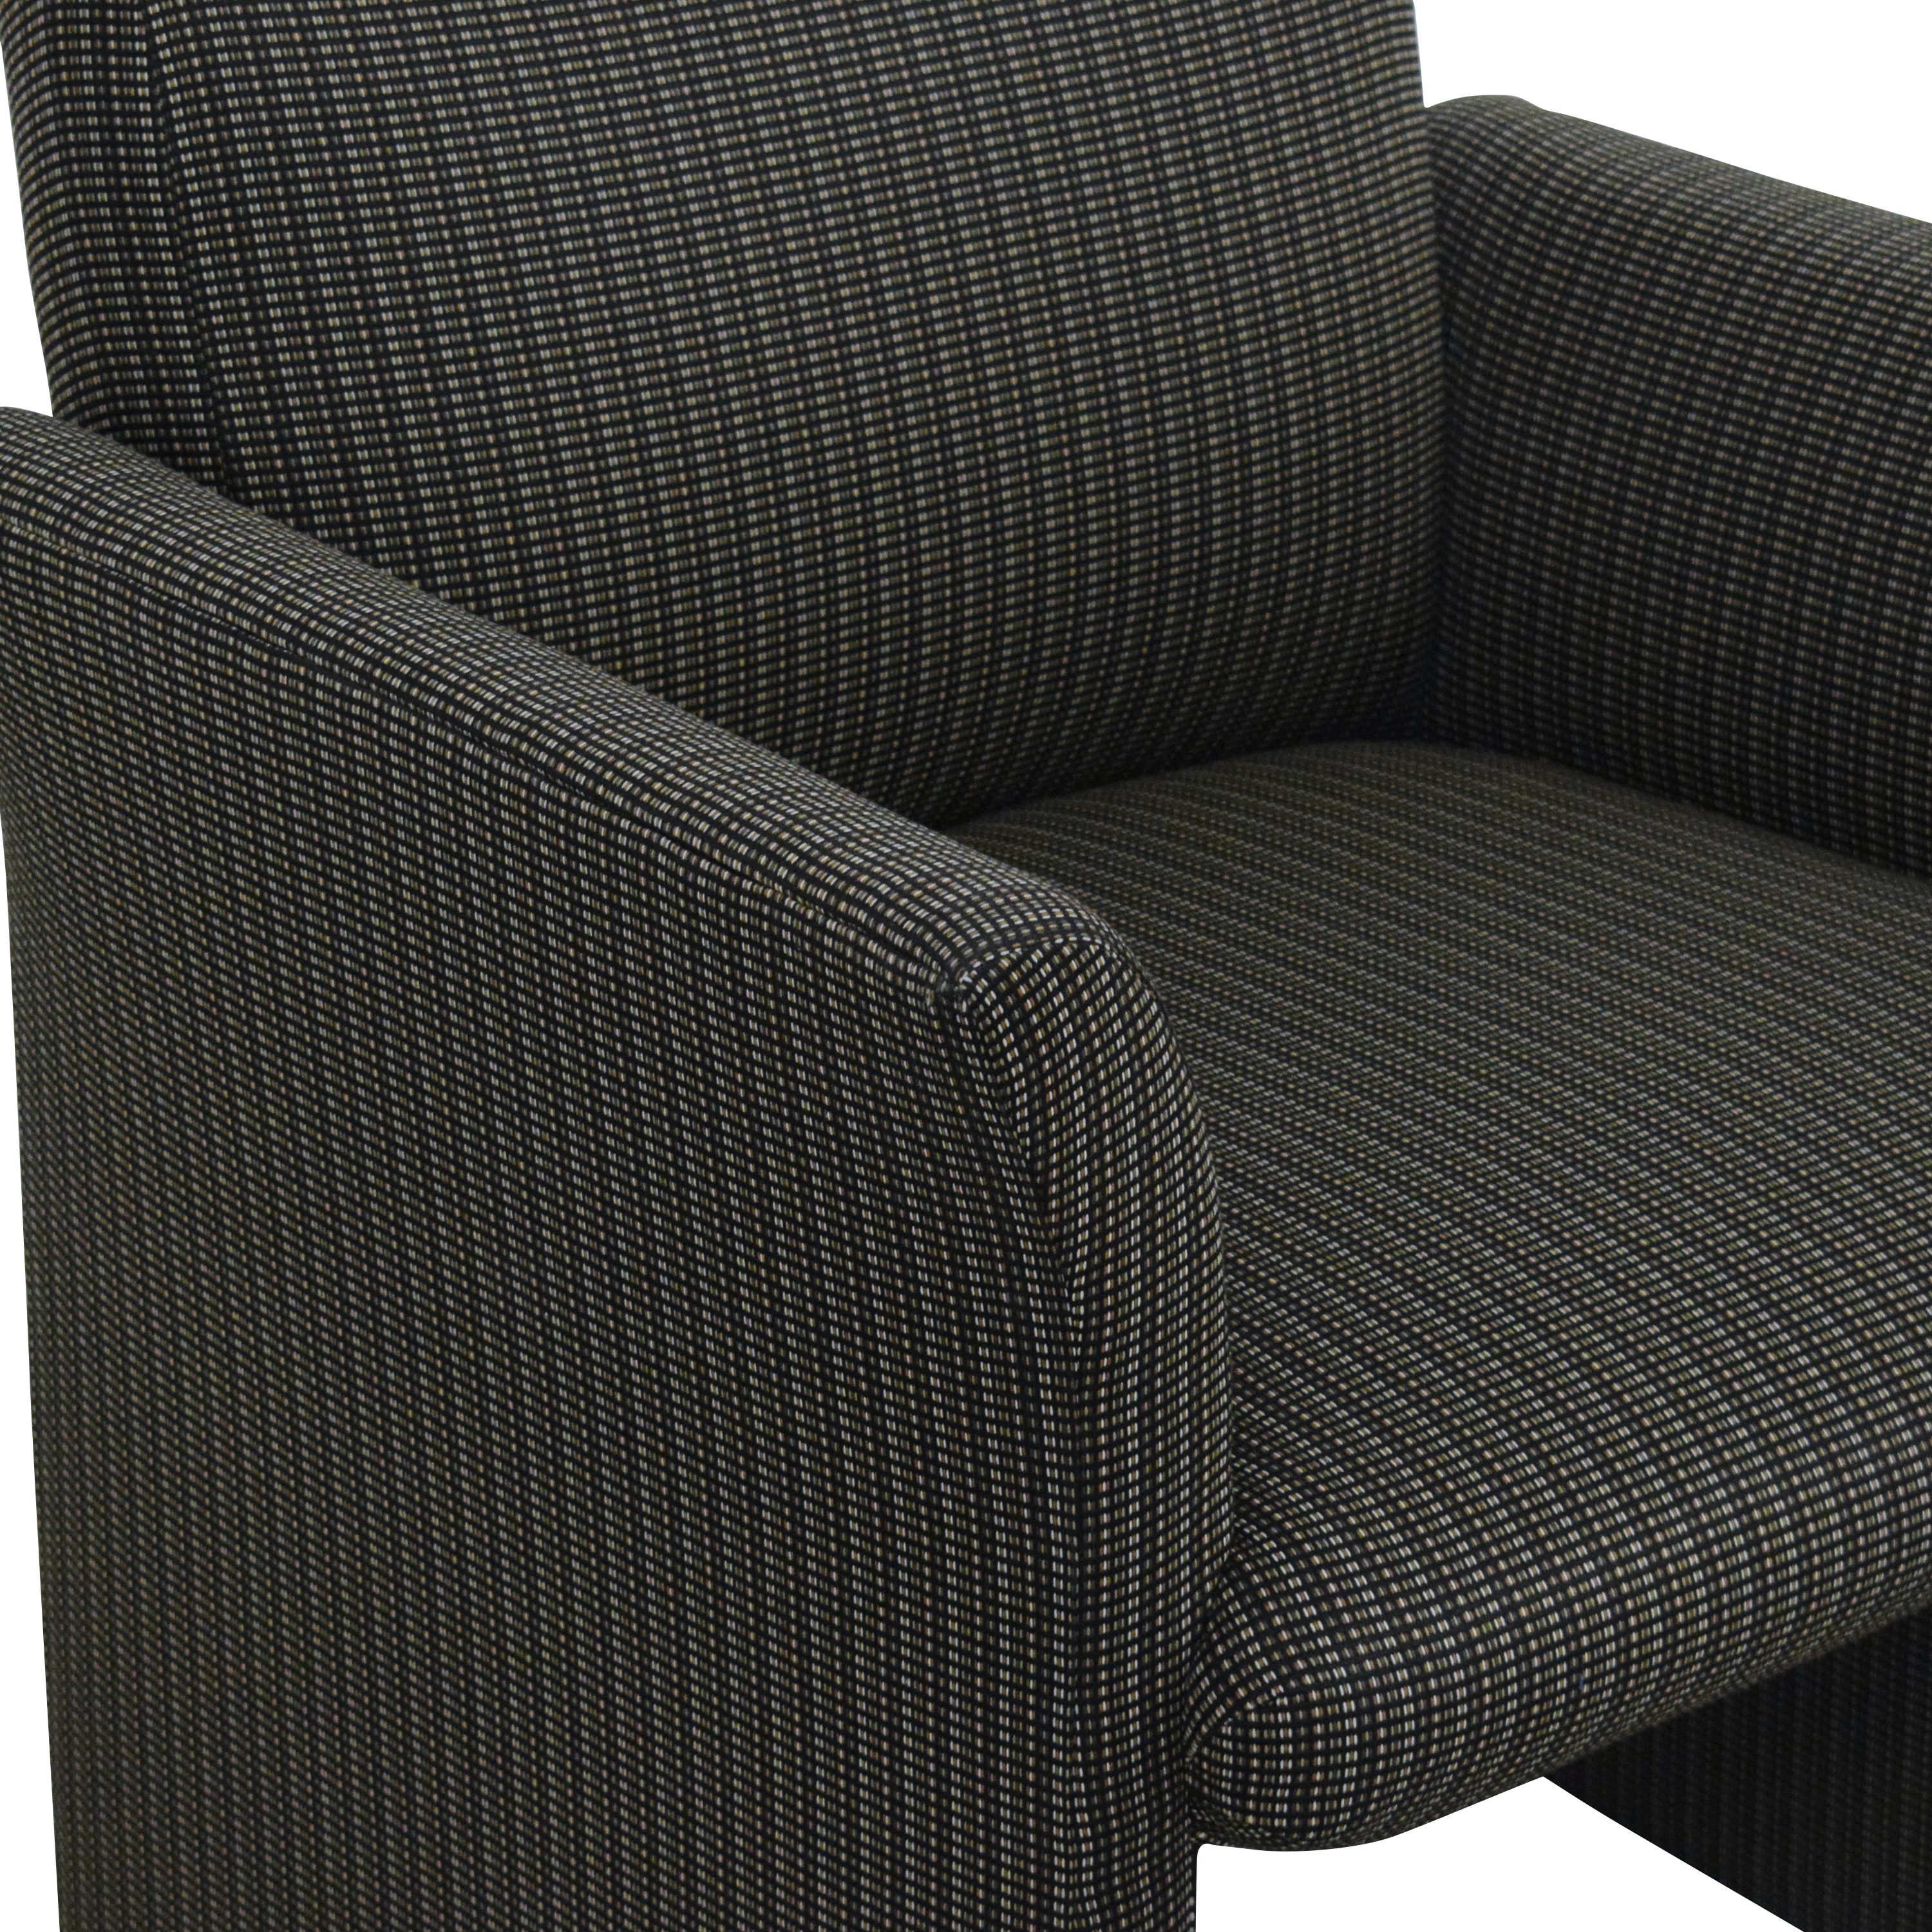 Contemporary Upholstered Club Chair second hand